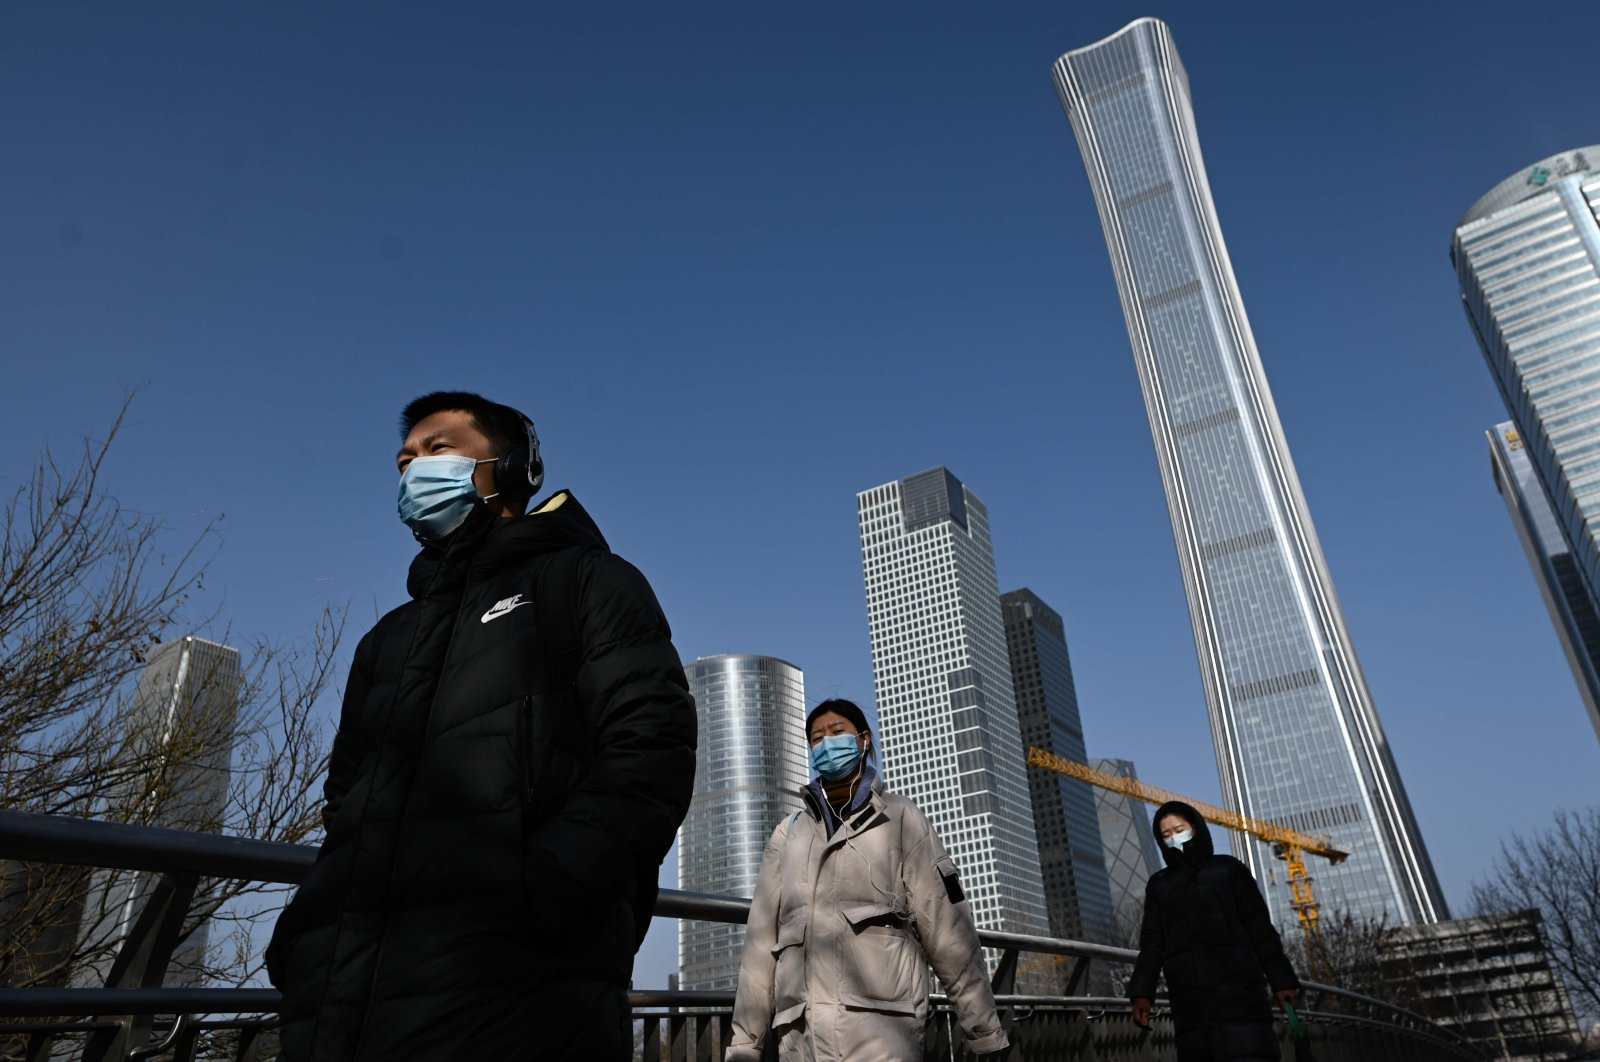 A group of pedestrians walk on an overpass in the central business district in Beijing, China, Jan. 15, 2021. (AFP Photo)